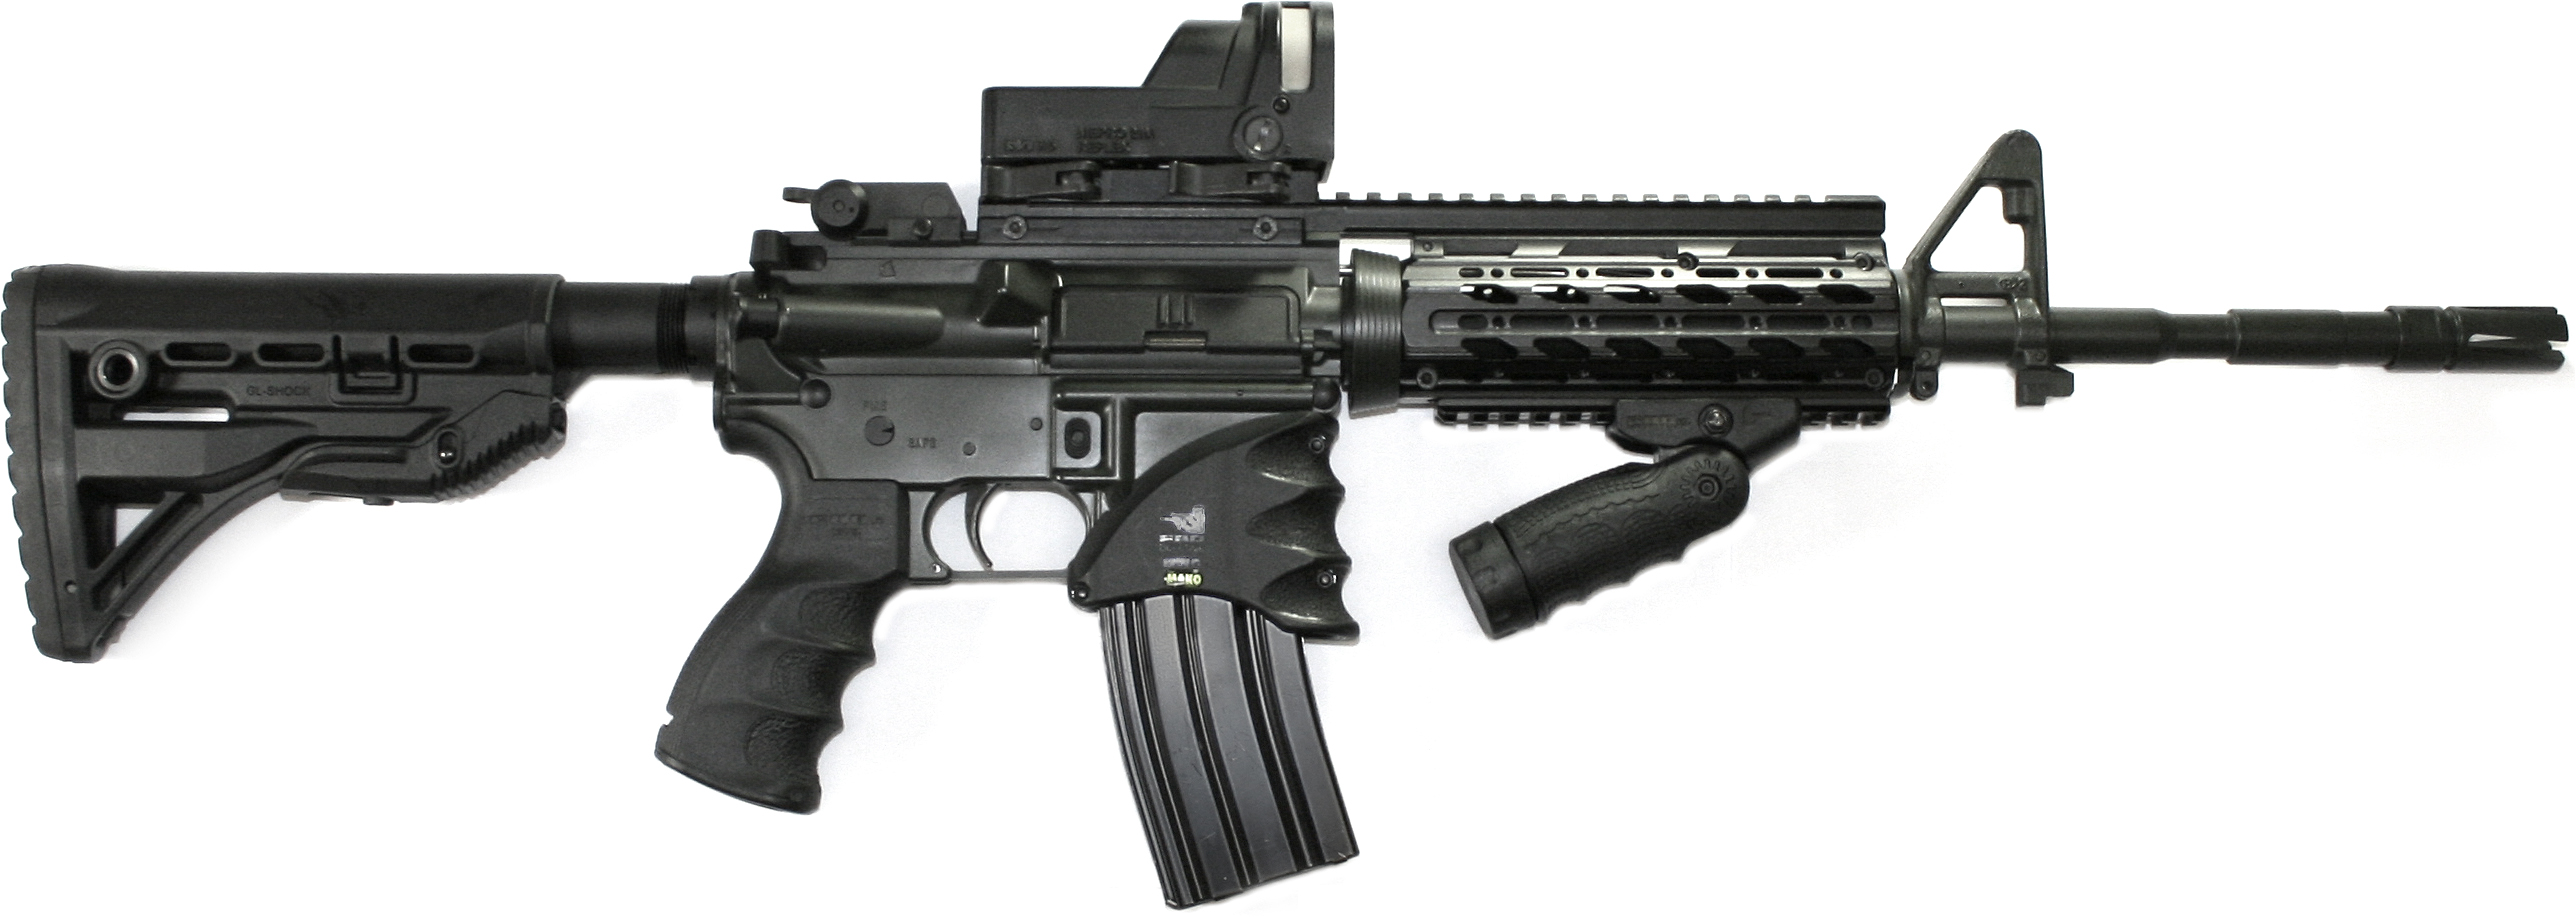 Advantages of the GL-SHOCK M4/AR-15 Carbine Stock